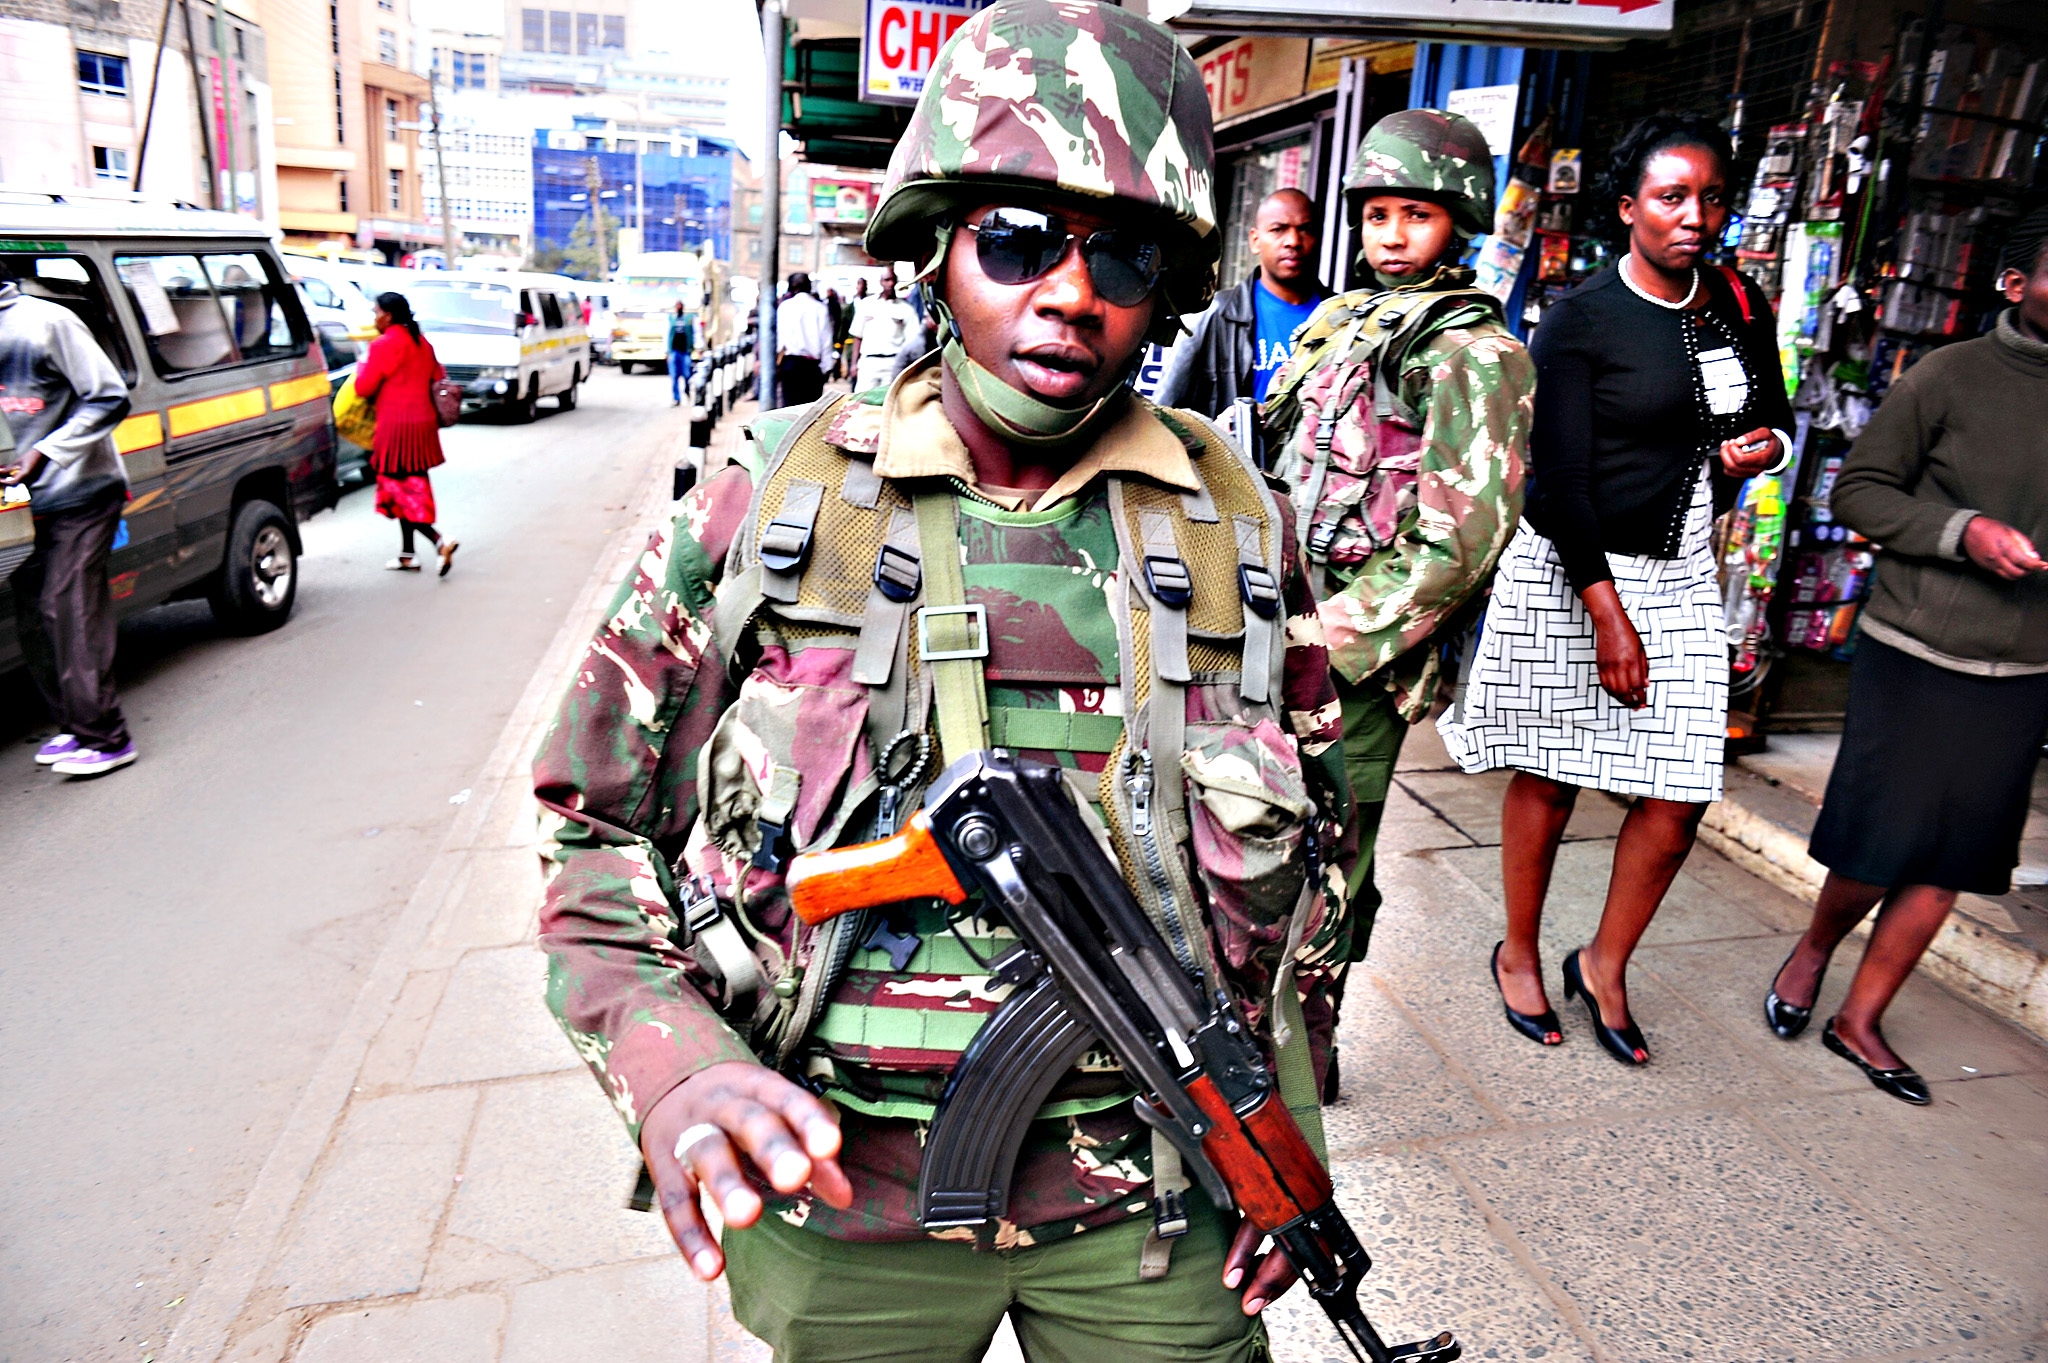 Police officers patrol along a street in Kenya's capital Nairobi on July 24, 2015, ahead of the visit of US President Barack Obama. Obama arrives in his ancestral homeland Kenya later today, with a massive security operation under way to protect him from Al-Qaeda-linked Somali militants